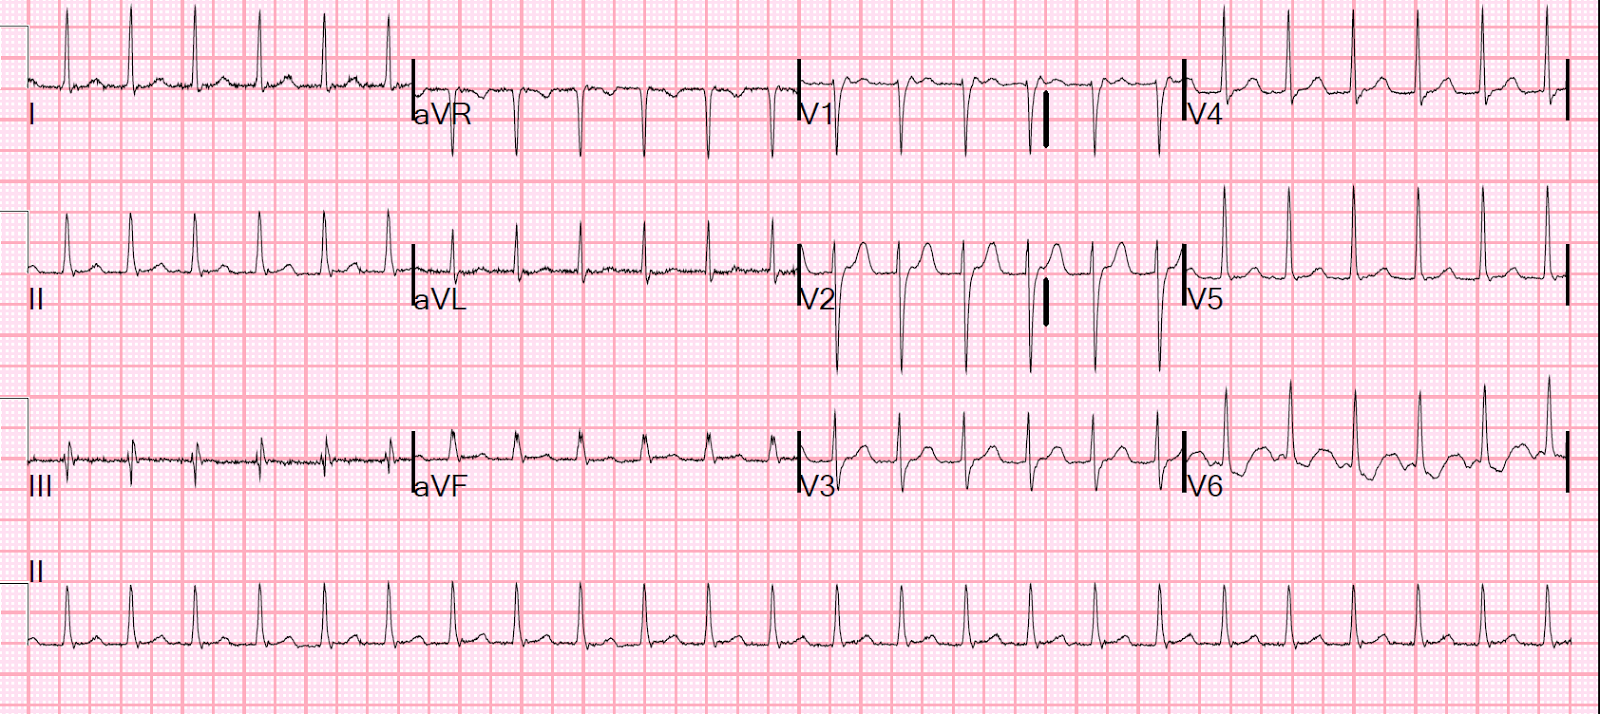 Dr Smith S Ecg Blog An Apparent Svt That Does Not Persistently Correct With Adenosine